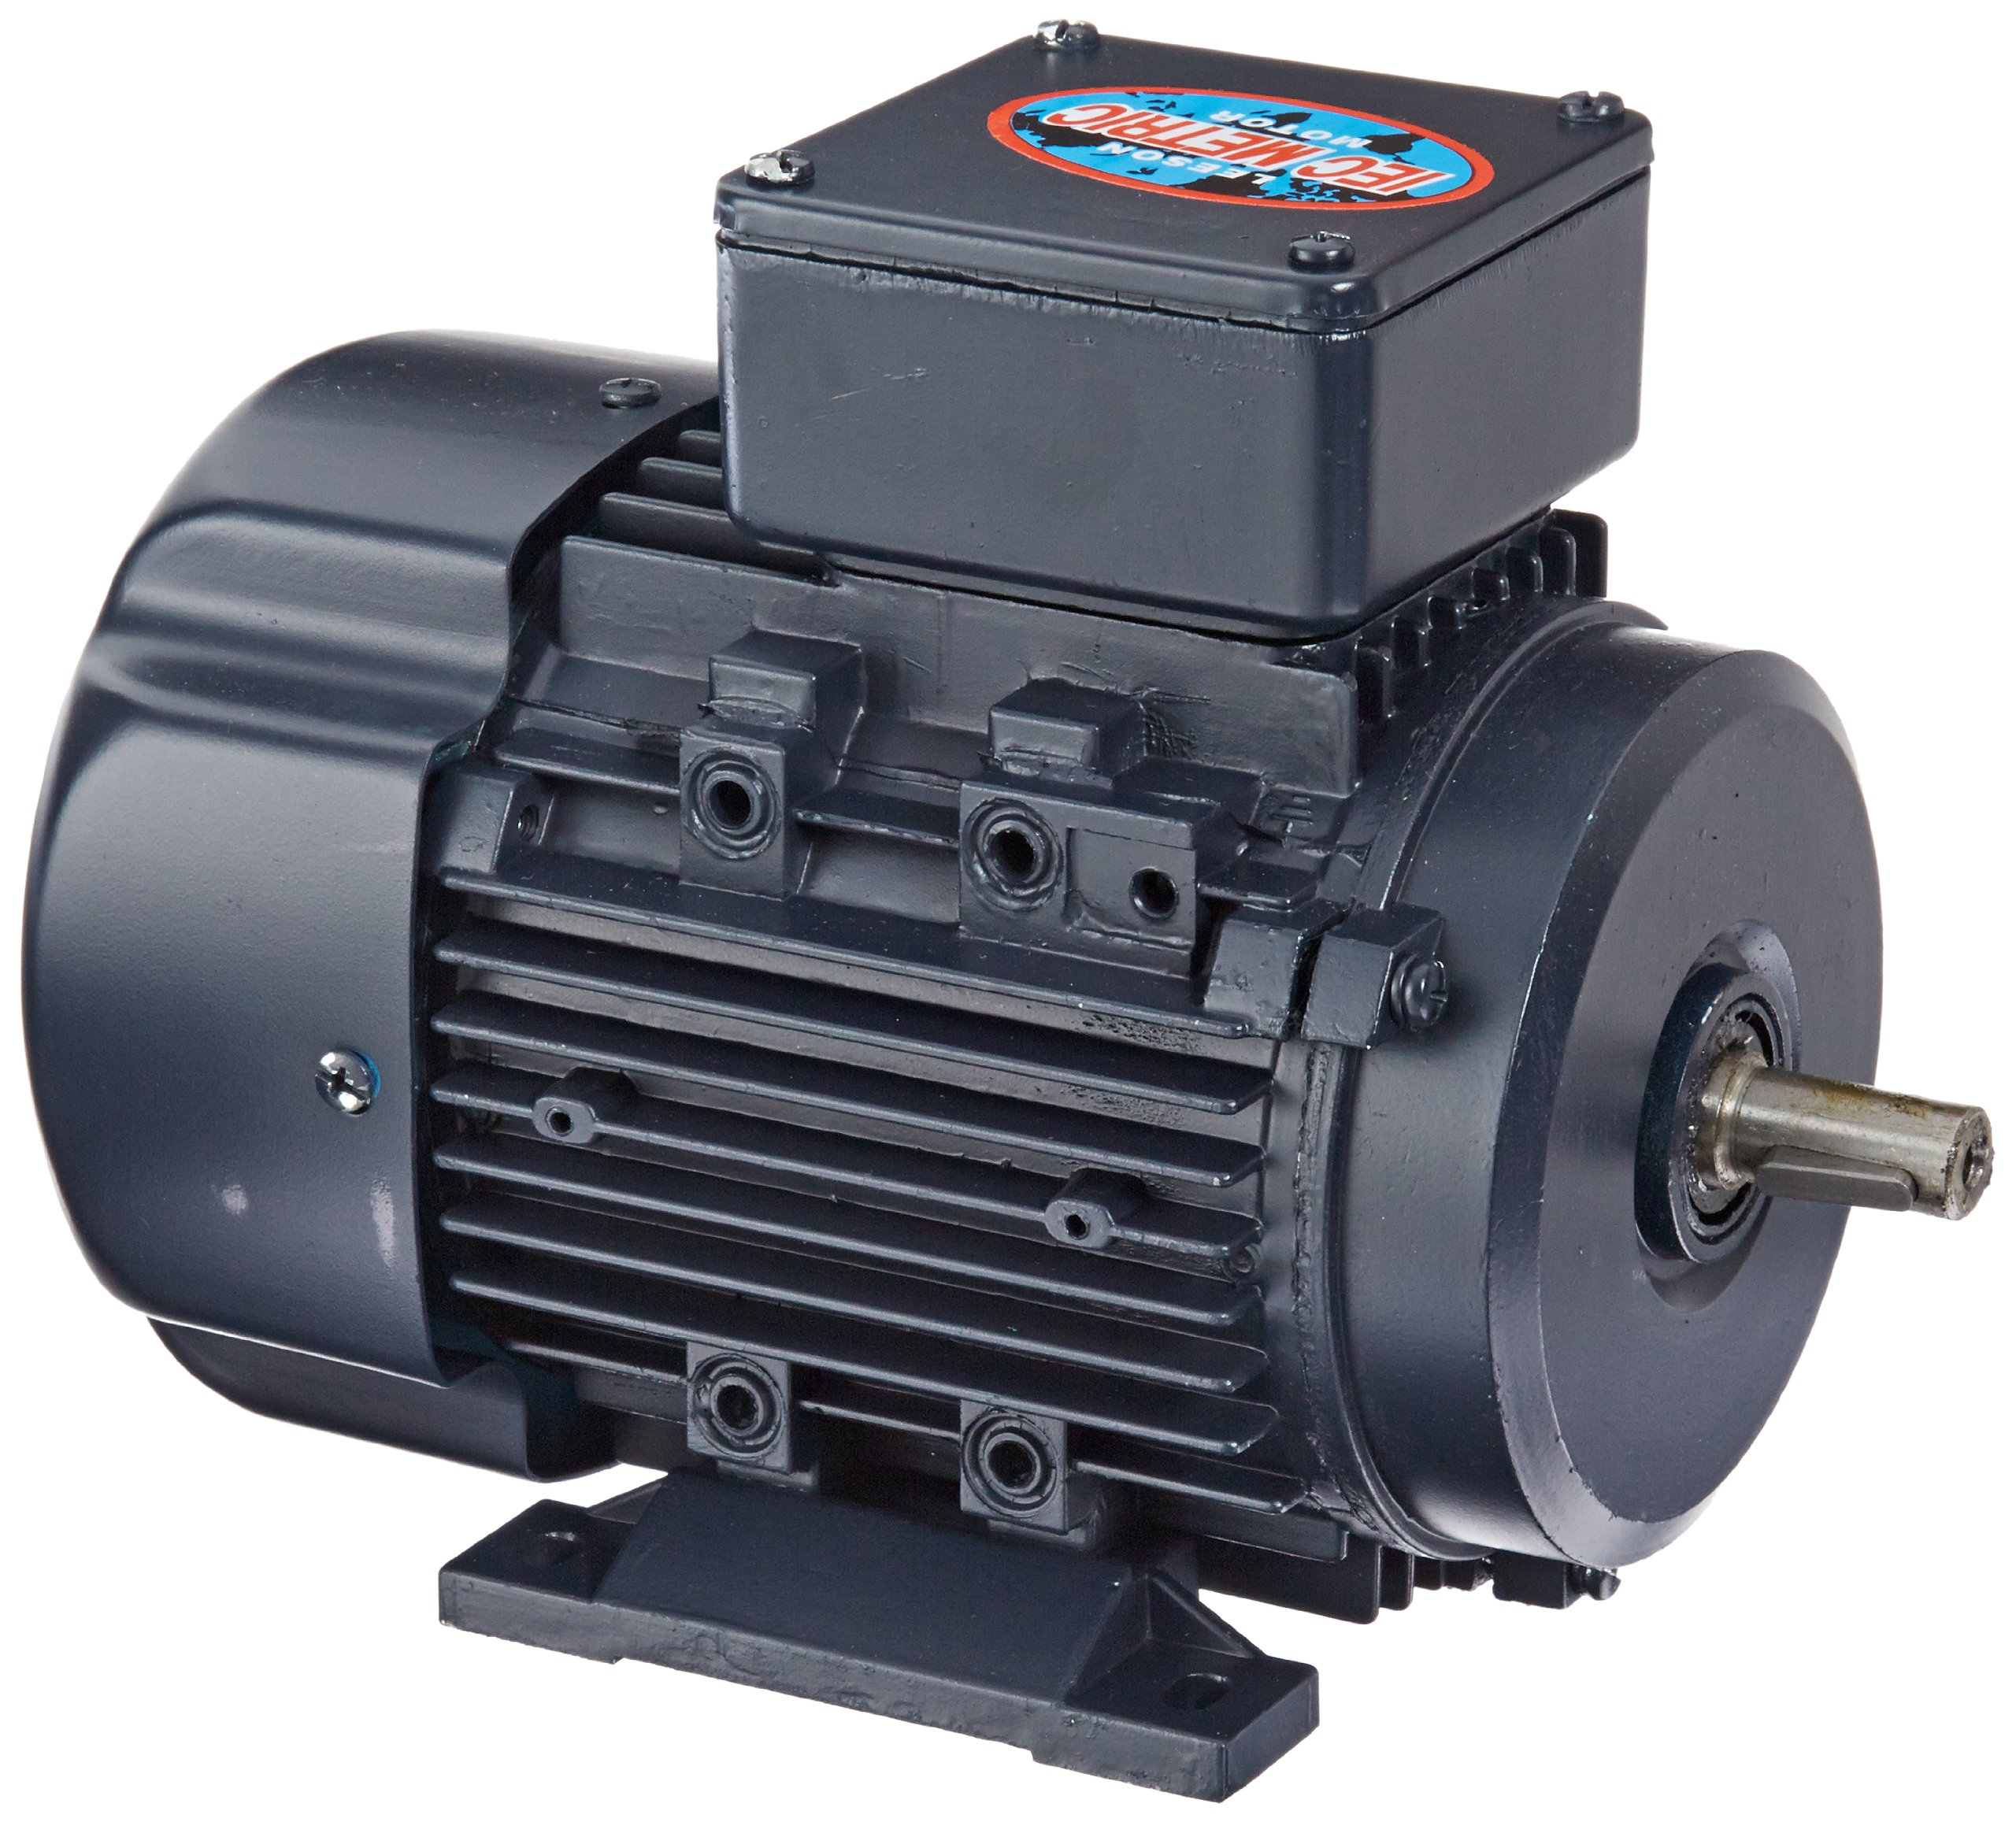 Leeson 192098.00 Rigid Base IEC Metric Motor, 3 Phase, D71 Frame, B3 Mounting, 0.33HP, 1800 RPM, 575V Voltage, 60Hz Fequency